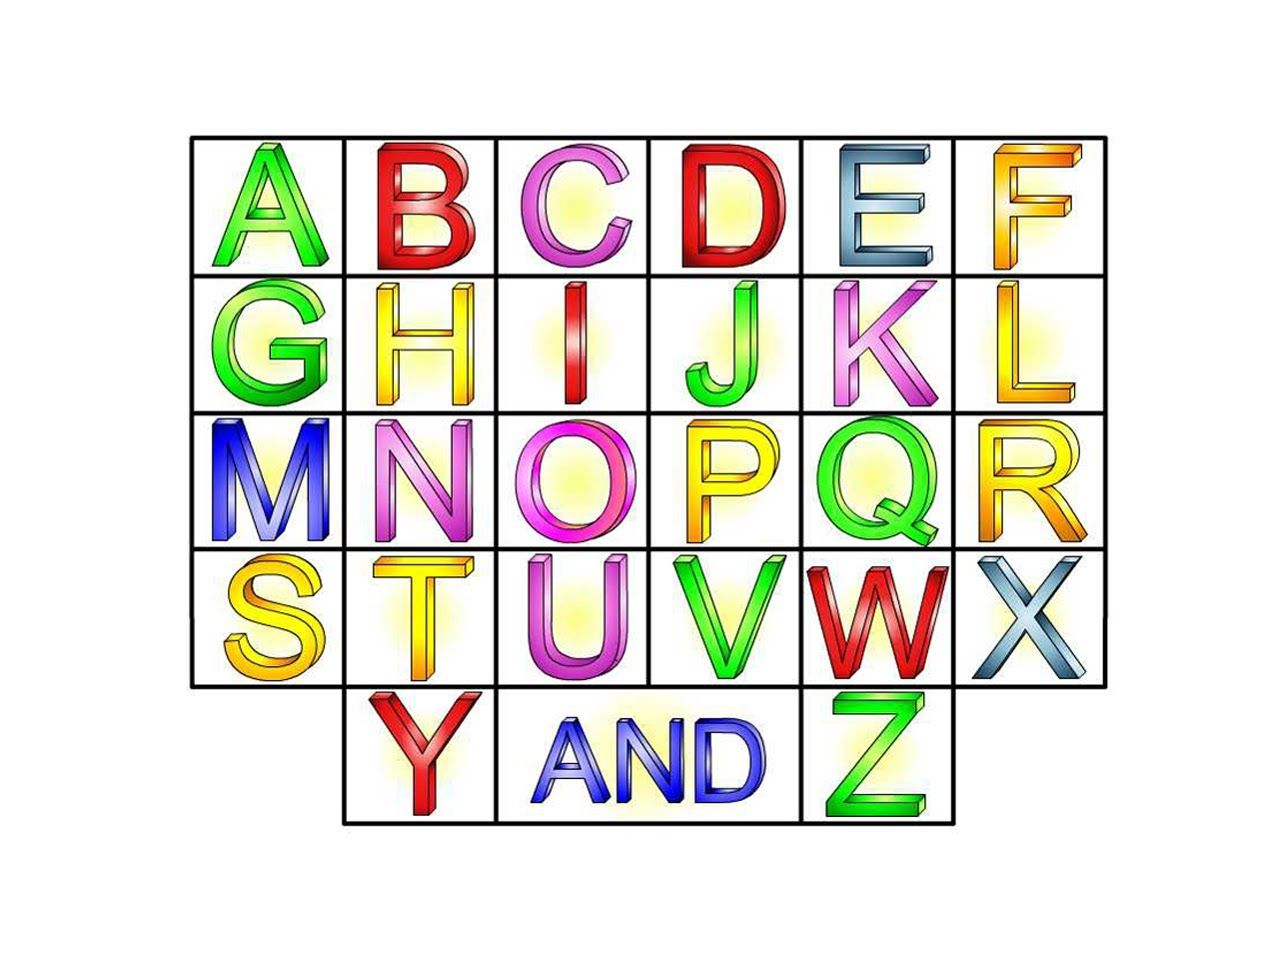 Alphabet Song Abc Songs Alphabet Songs English Lessons